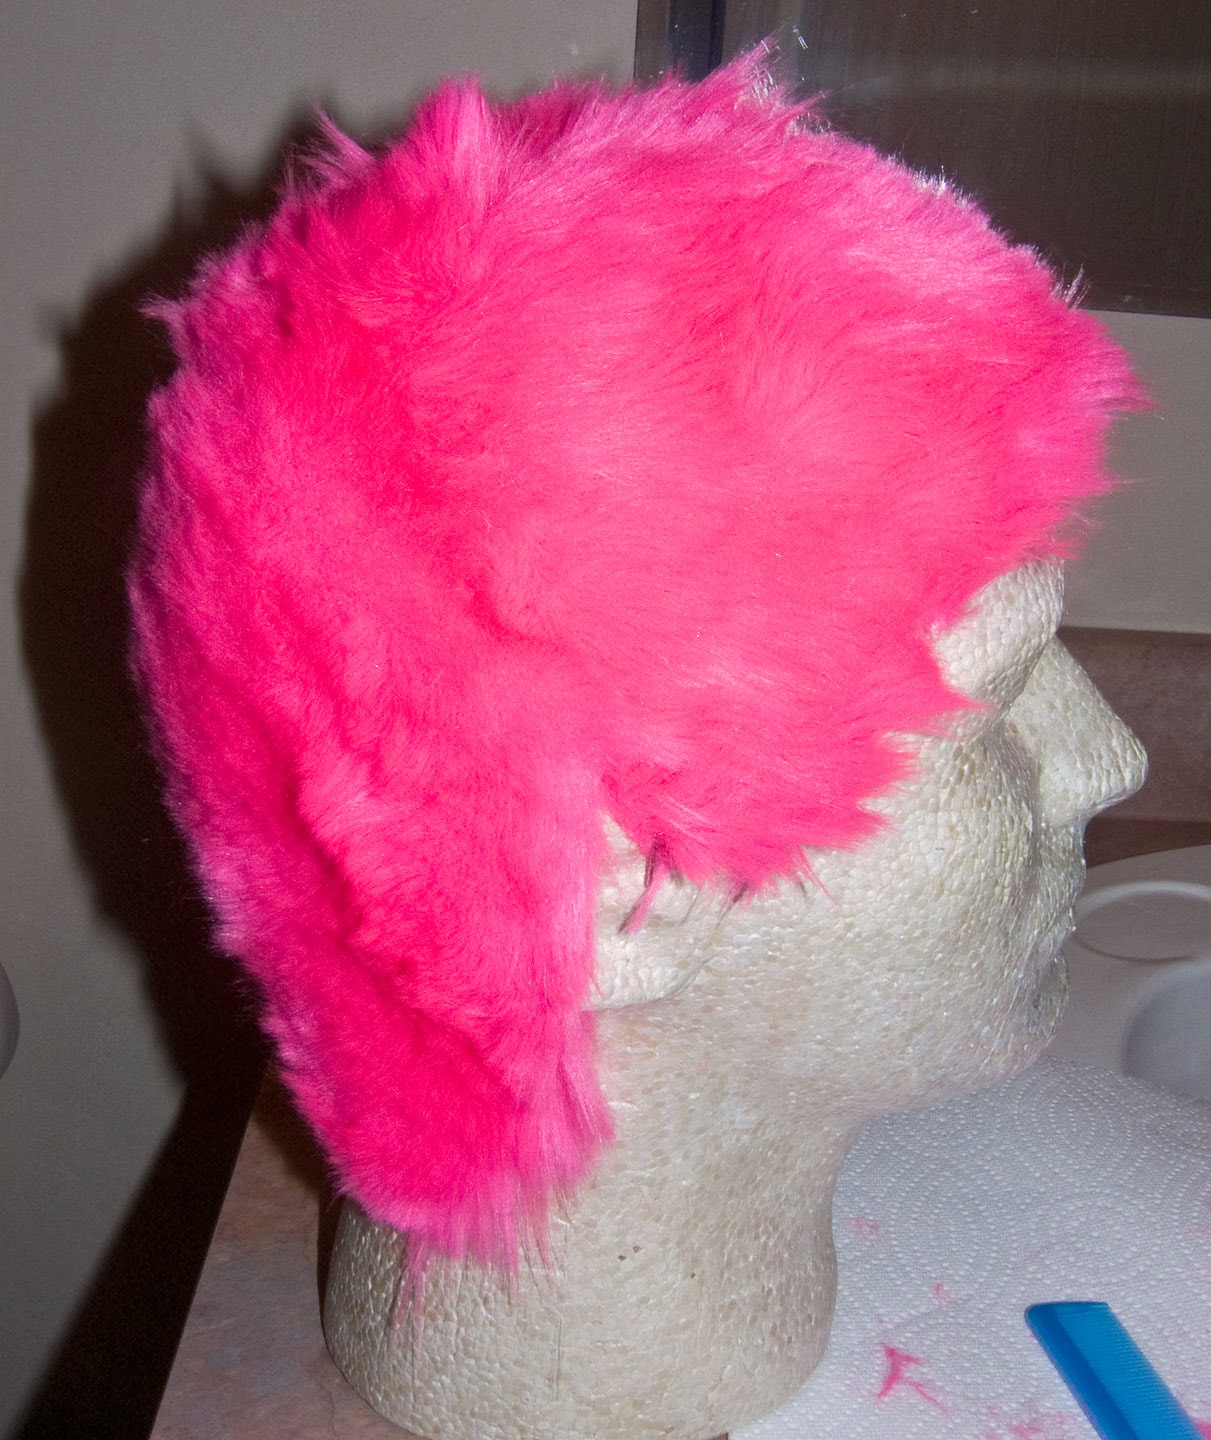 WARPAINT and Unicorns: Fake Buzz Cut Hair, Faux Fur Dying, Taming Clip